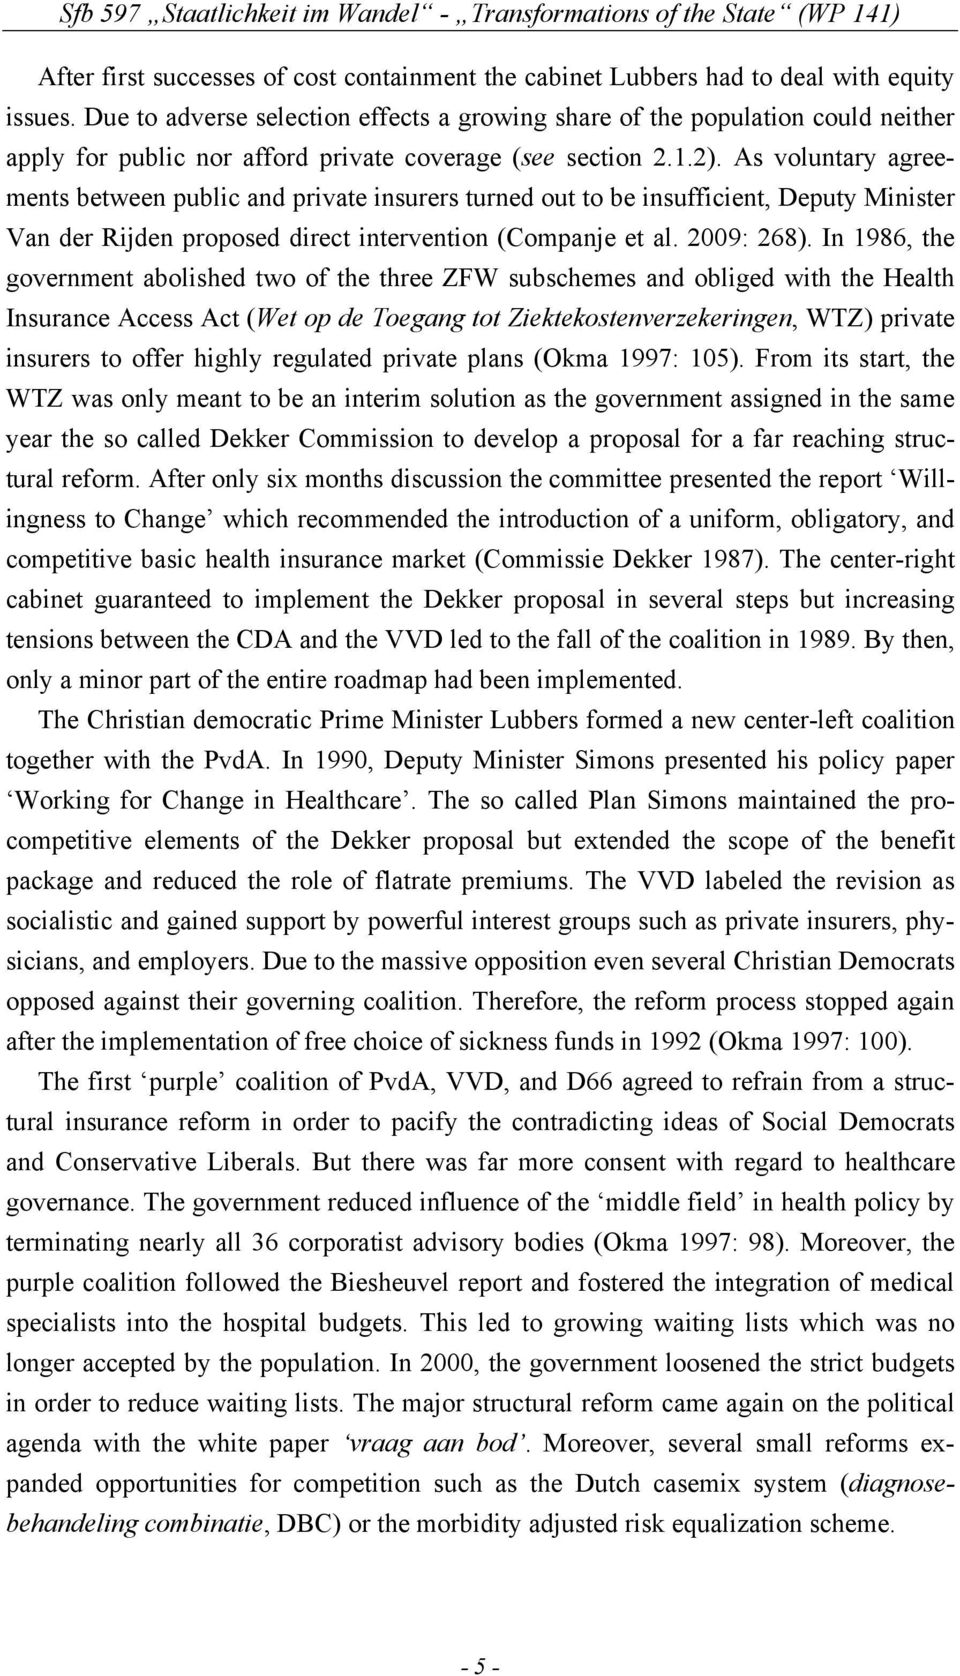 As voluntary agreements between public and private insurers turned out to be insufficient, Deputy Minister Van der Rijden proposed direct intervention (Companje et al. 2009: 268).